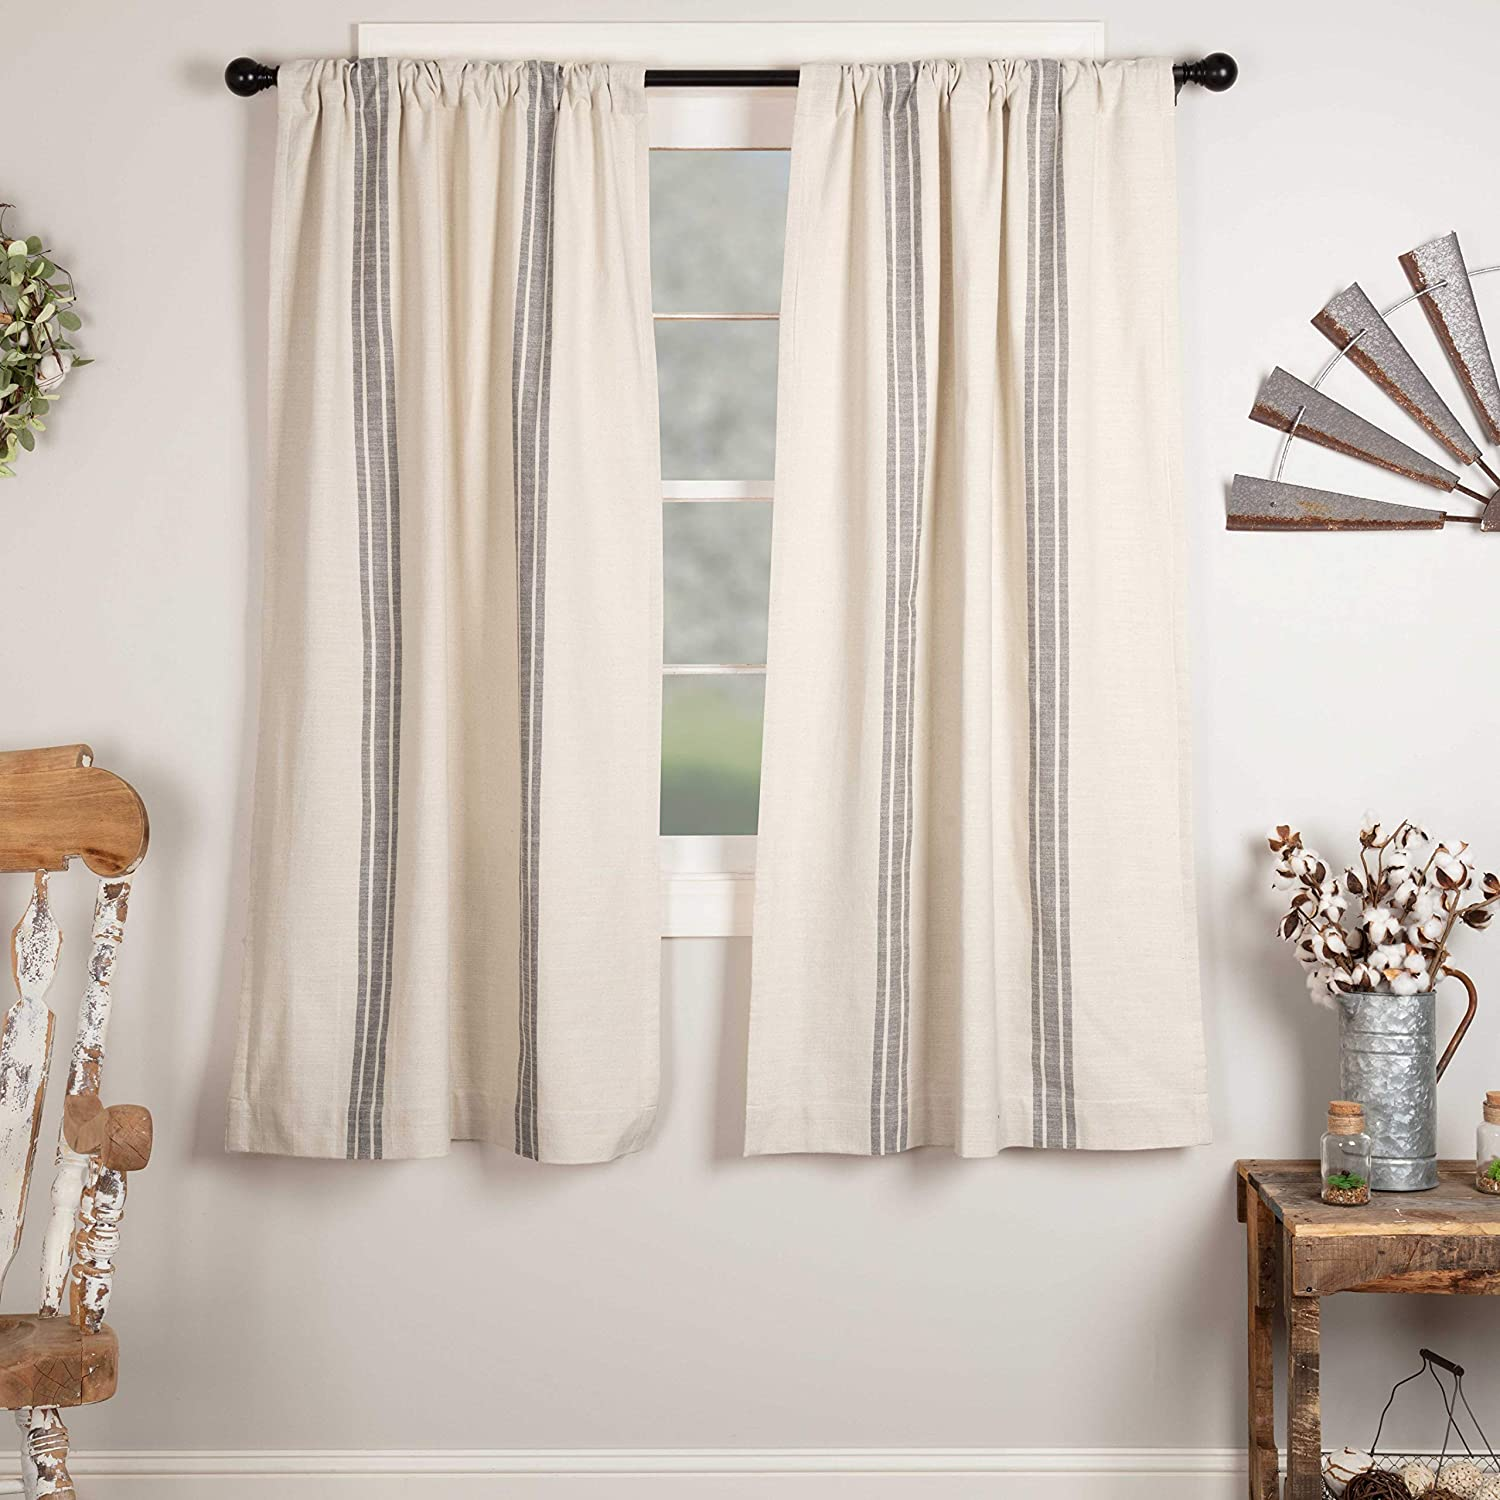 Market Quantity limited Place Gray Grain New Free Shipping Sack Stripe 2 Curtains Panel Set of 63